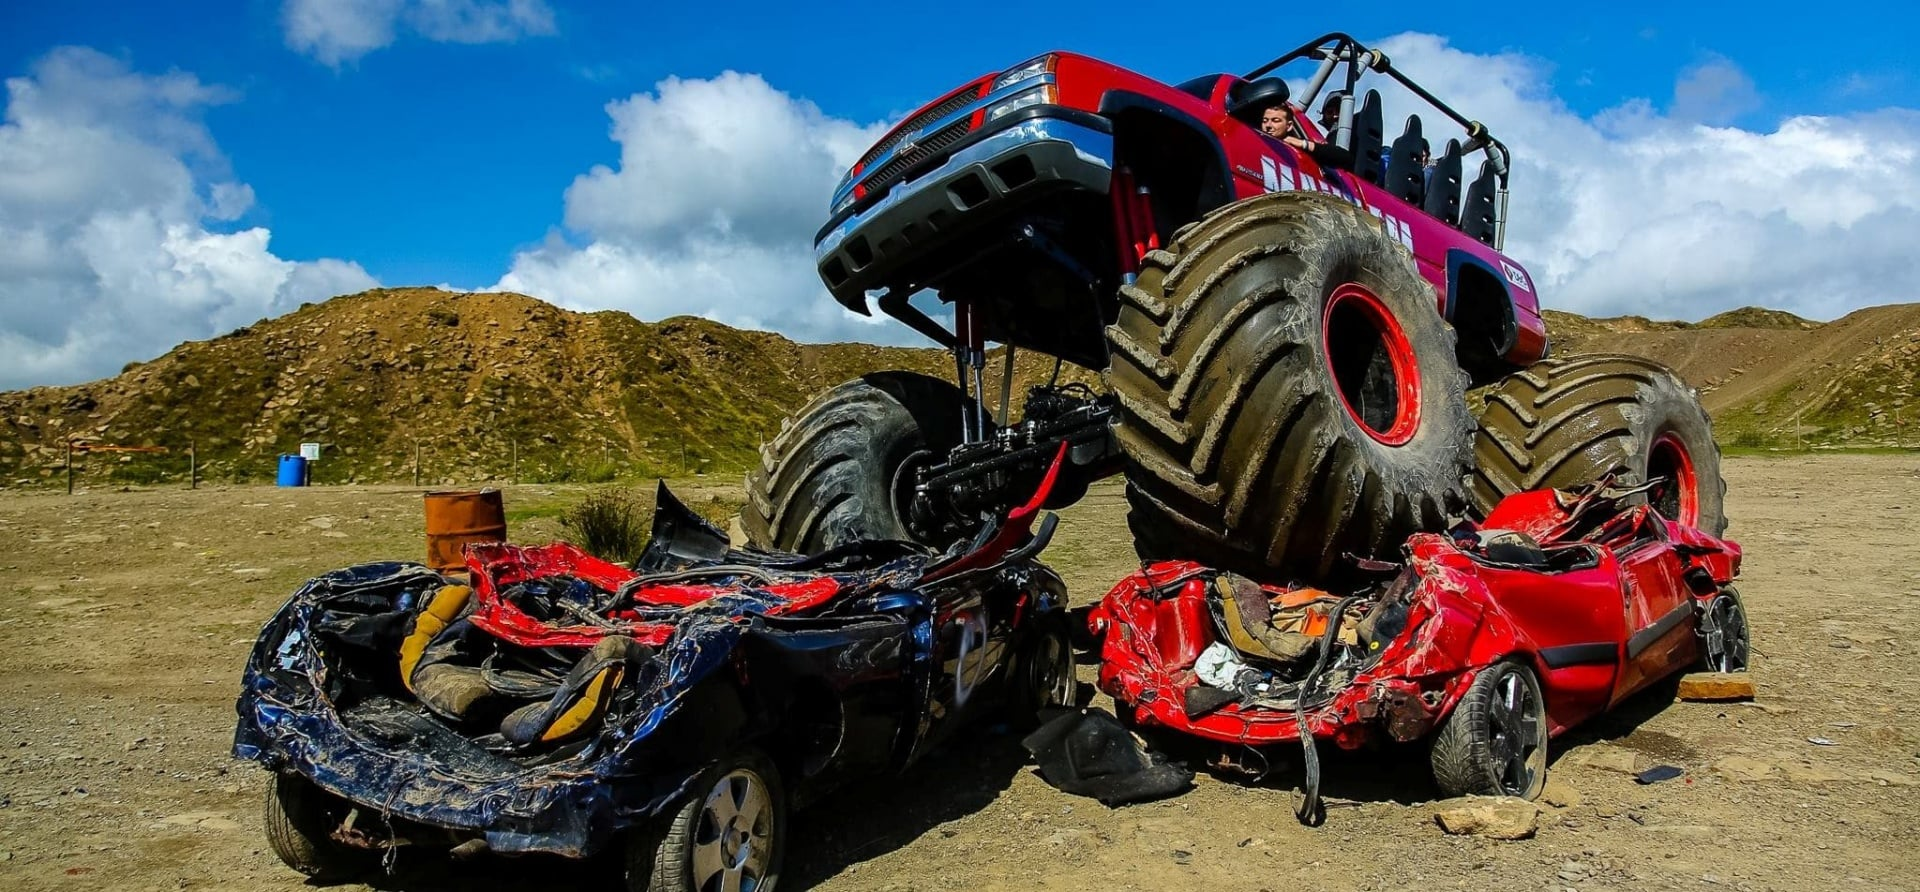 Family Monster Truck Passenger Ride Experience-5